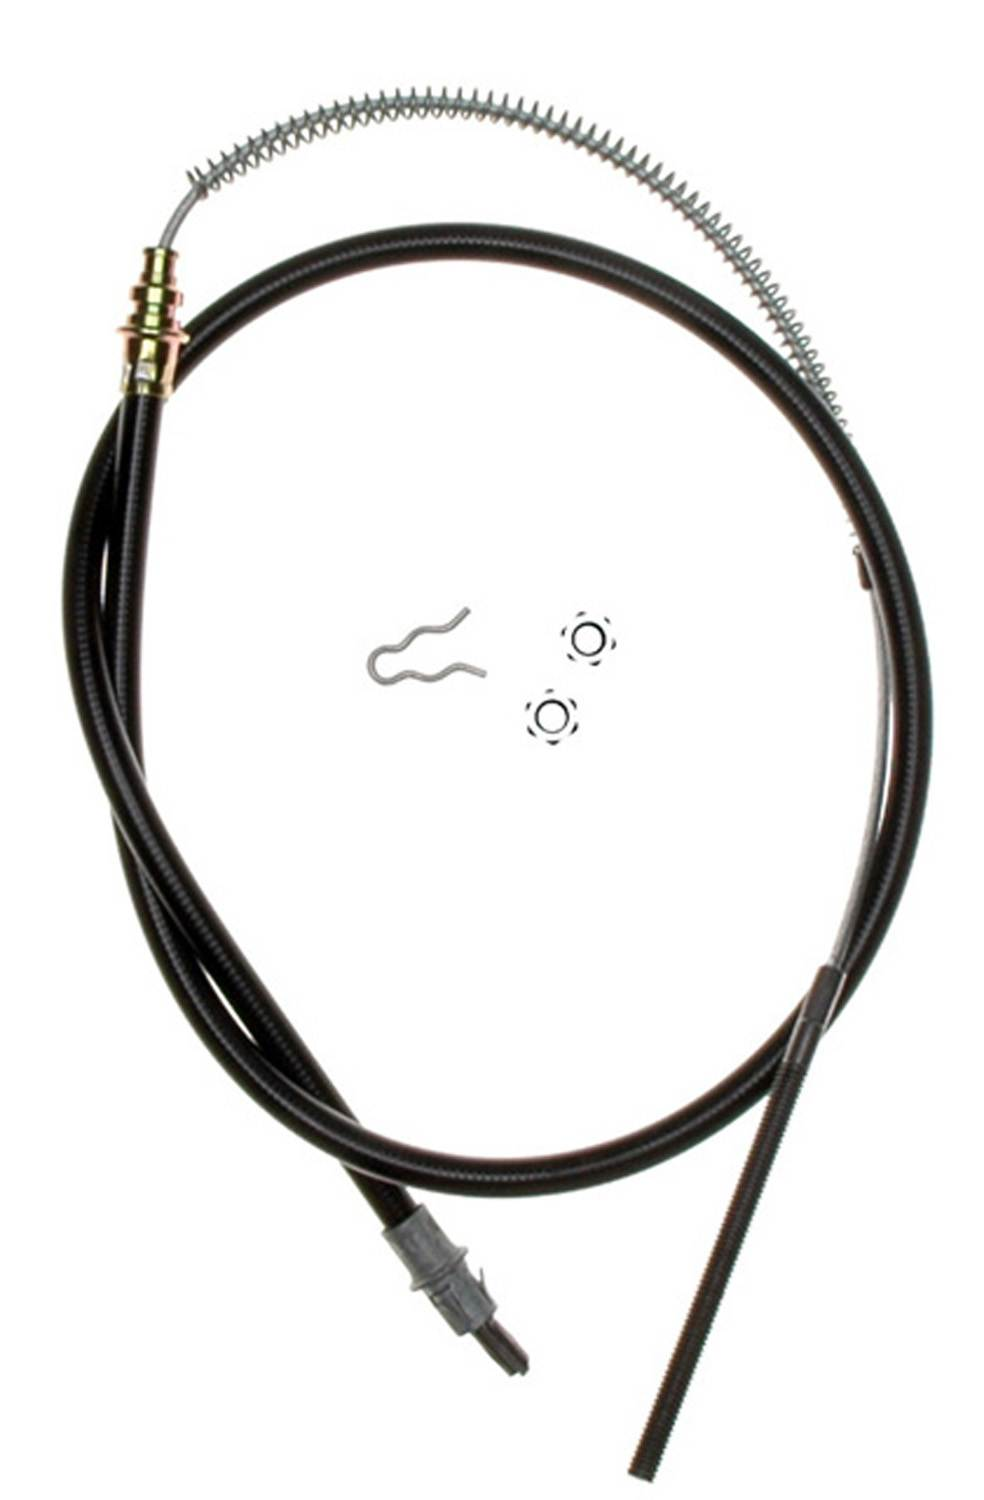 ACDELCO GOLD/PROFESSIONAL BRAKES CANADA - Parking Brake Cable (Front) - DCO 18P2255